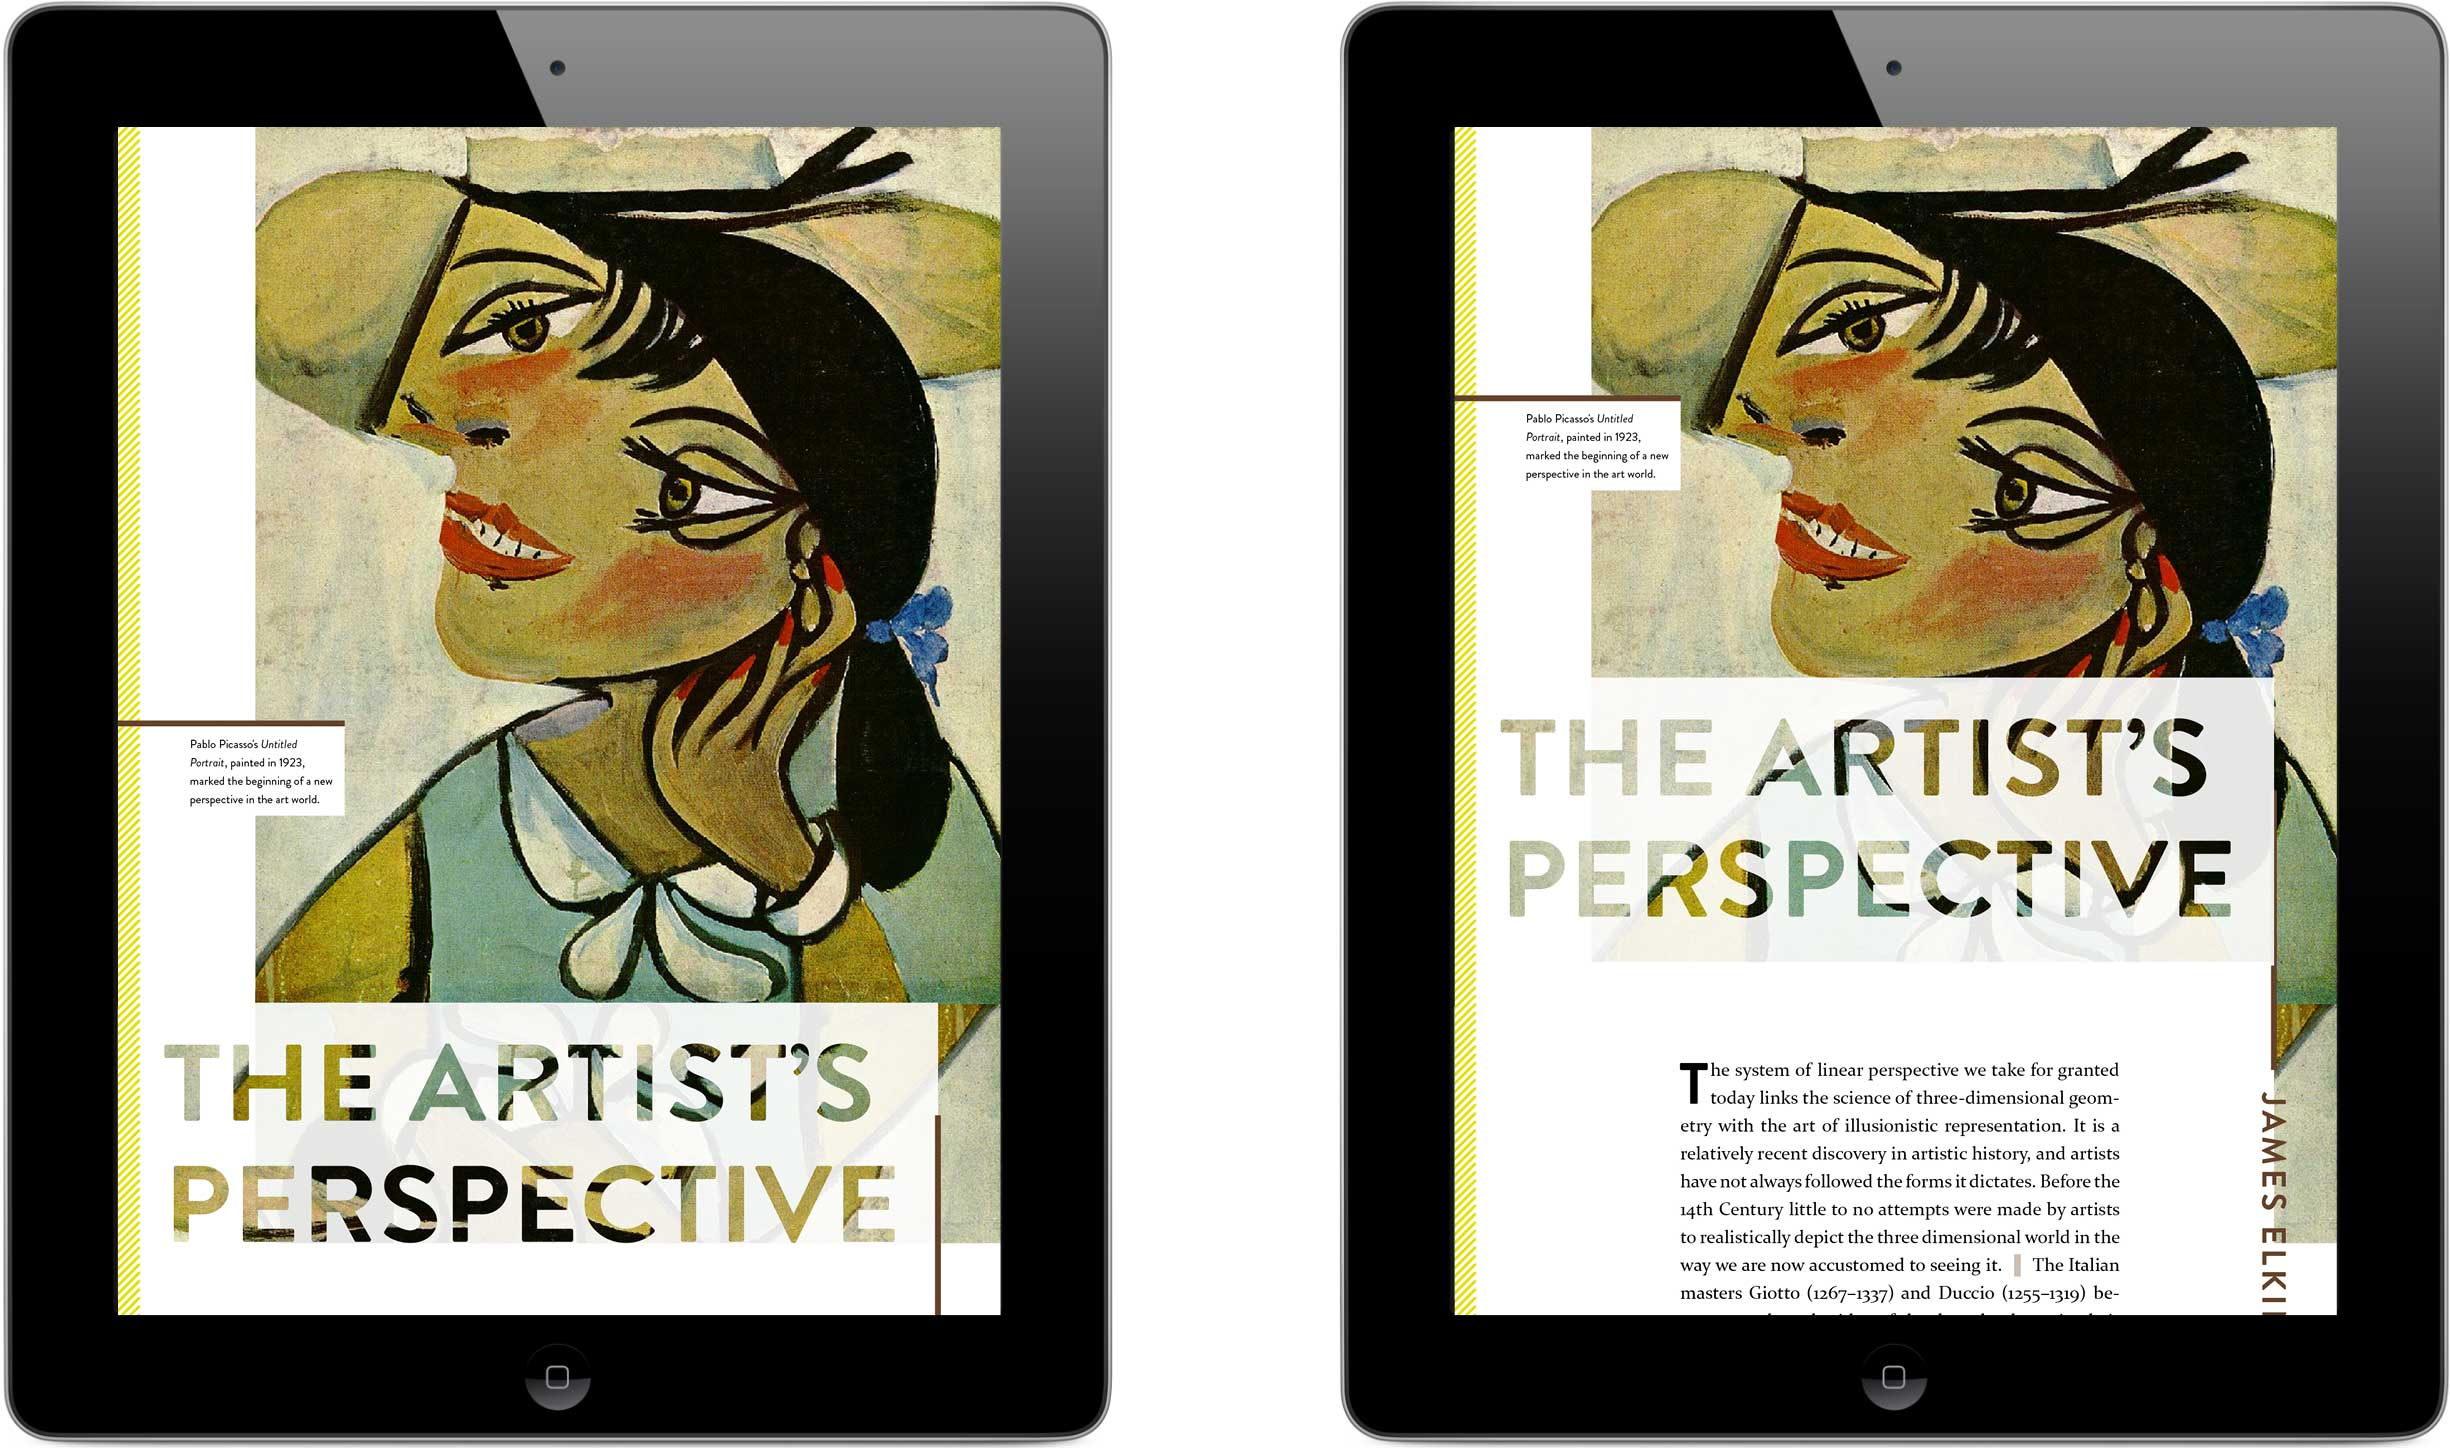 The cover slides right to reveal a paragraph introducing the theme of perspective.